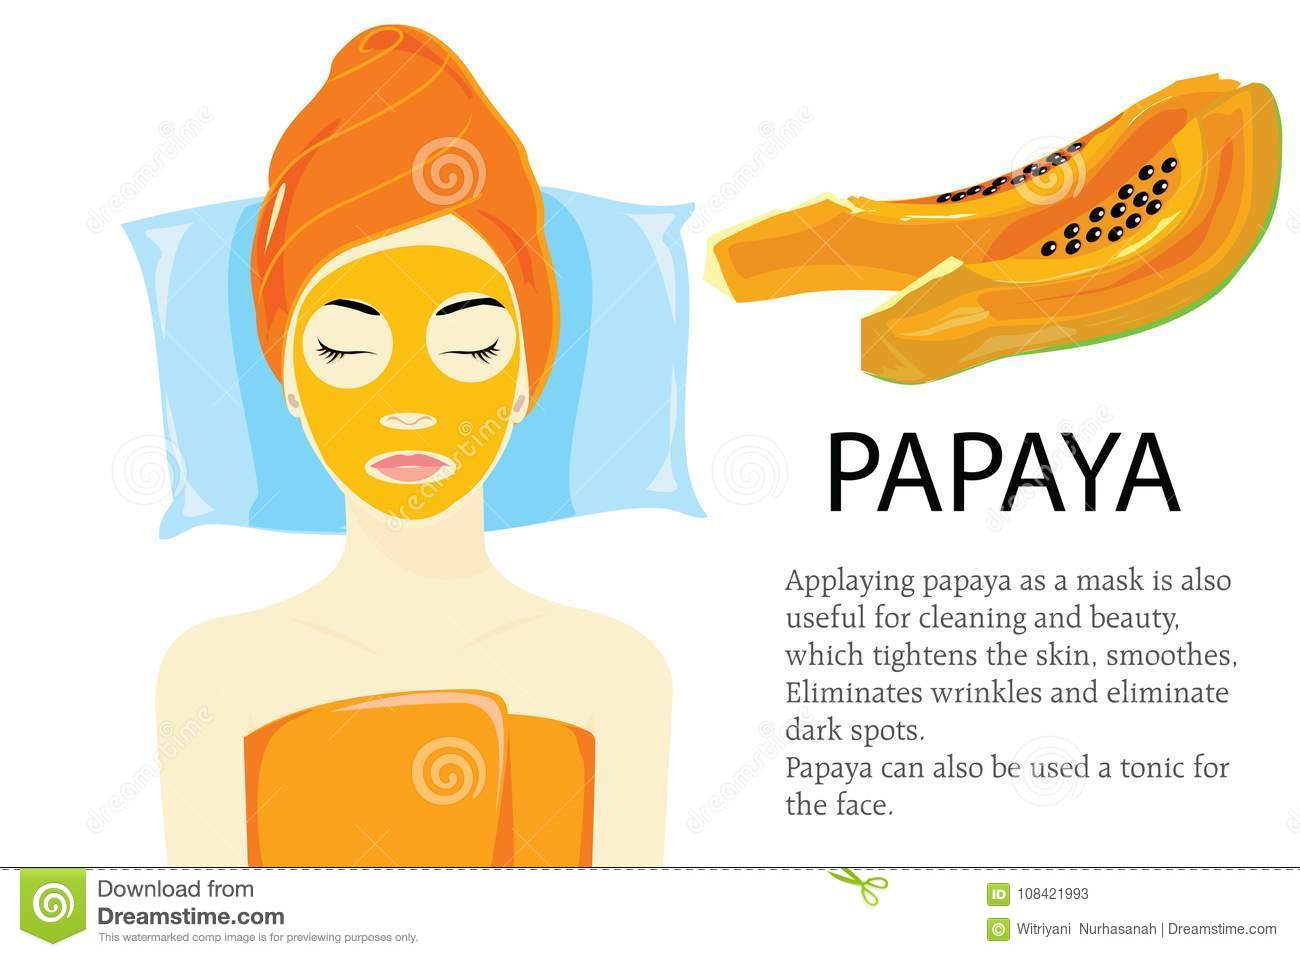 Download Papaya mask spa salon stock vector. Illustration of cartoon - 108421993